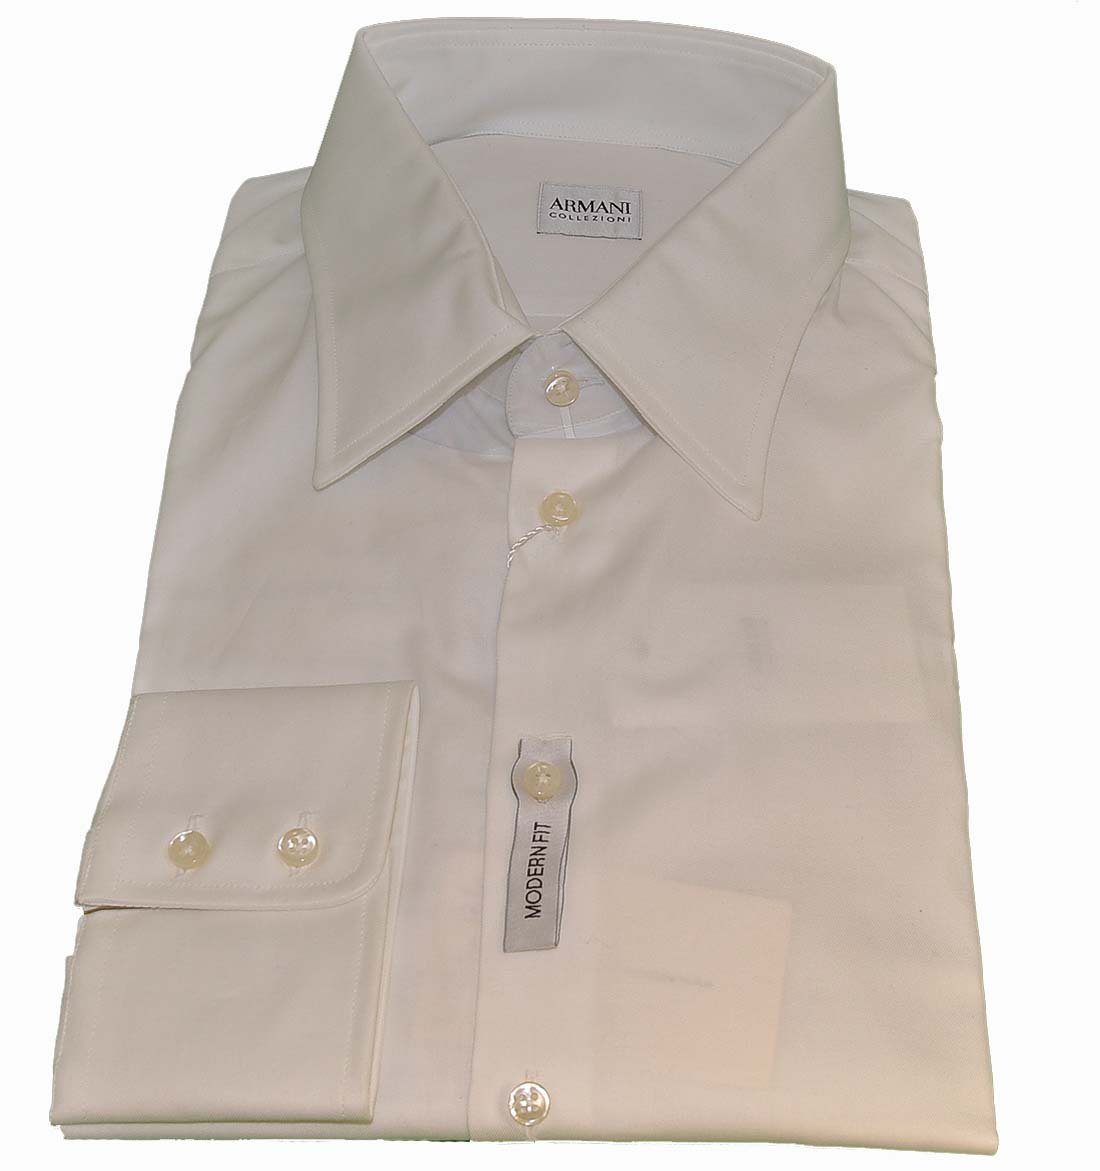 Armani Collezioni white Cotton Dress Shirt